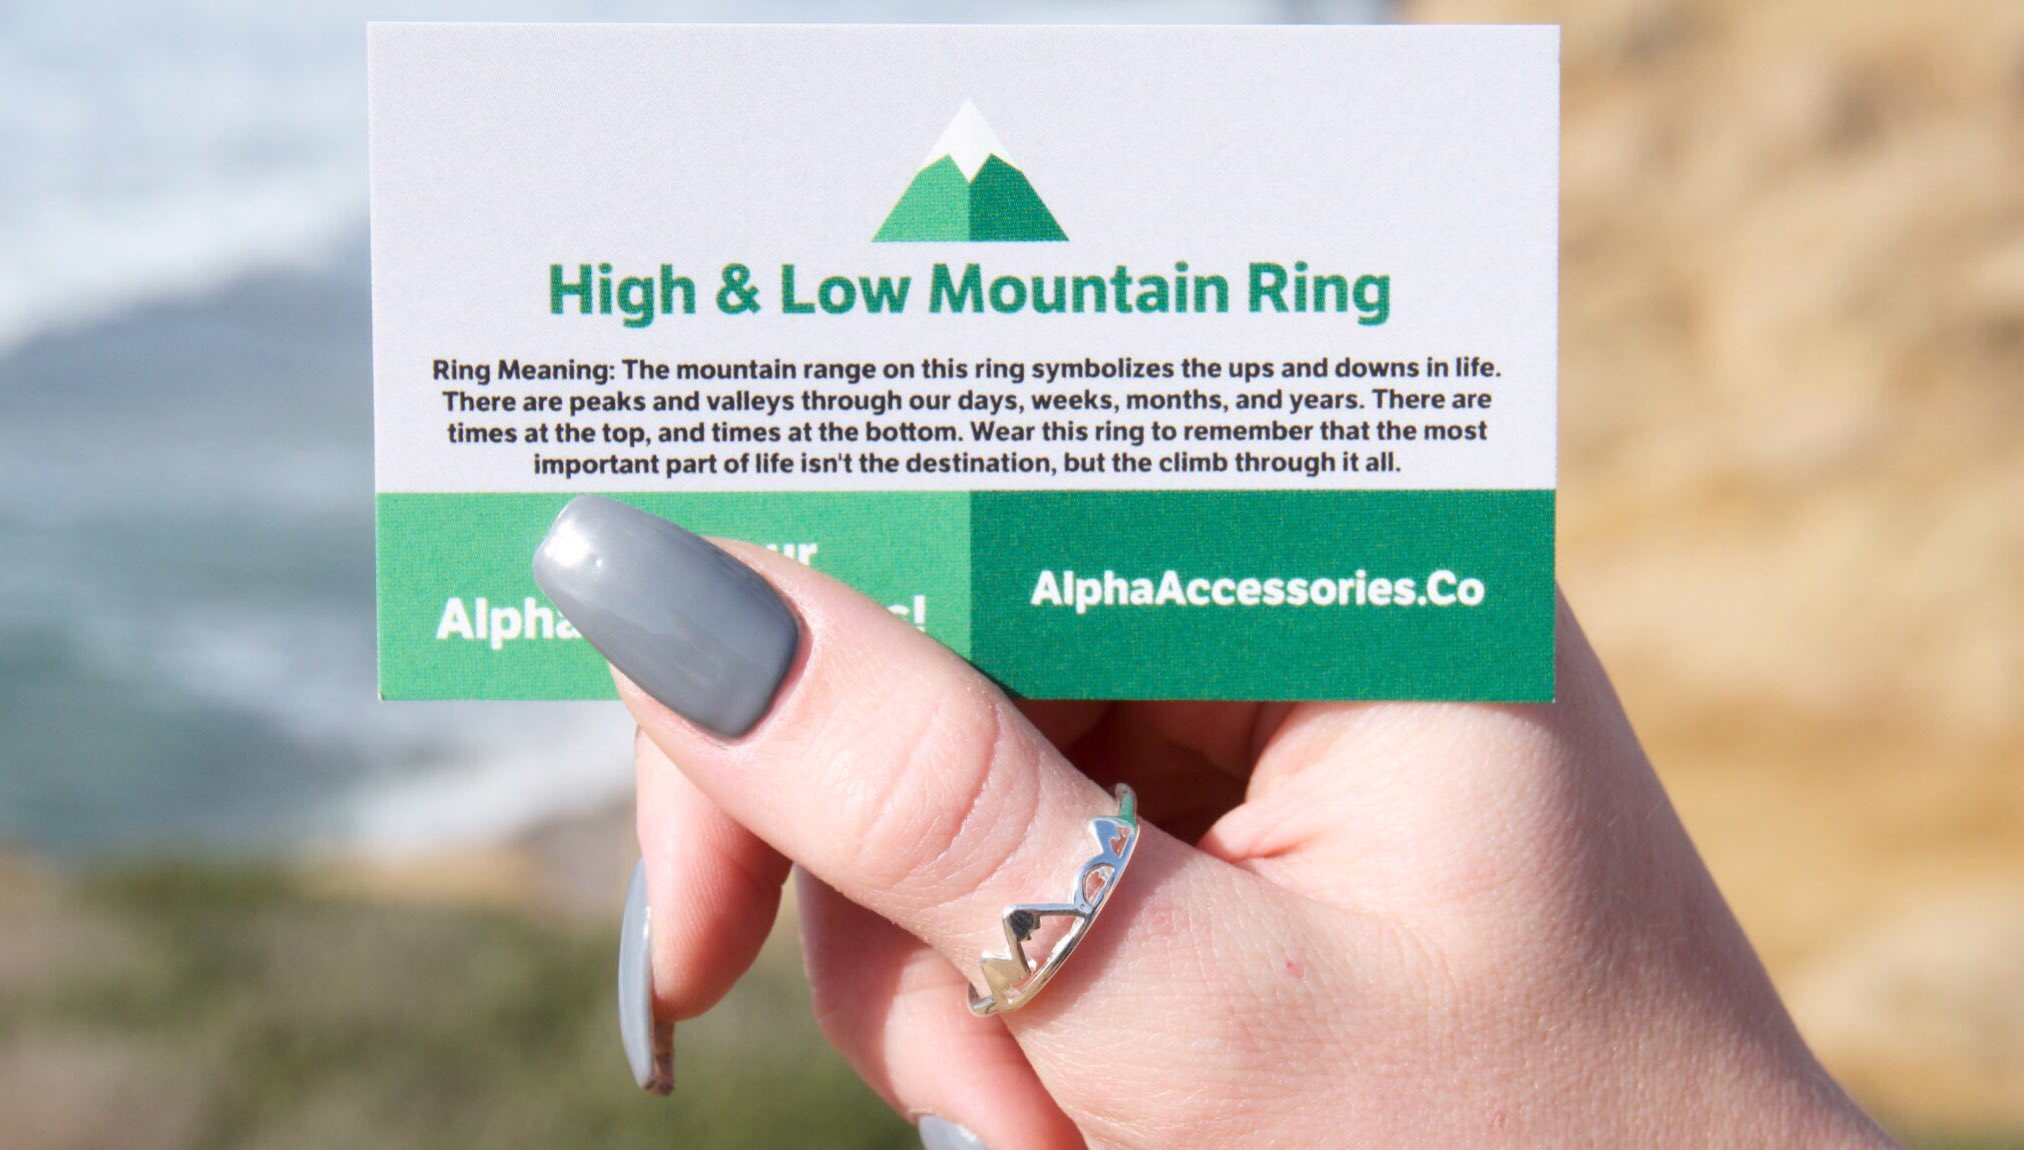 RT @BEFlTMOTlVATION: Neeed this high & low mountain ring from https://t.co/6QN7pgspDQ https://t.co/w398PeVIGF